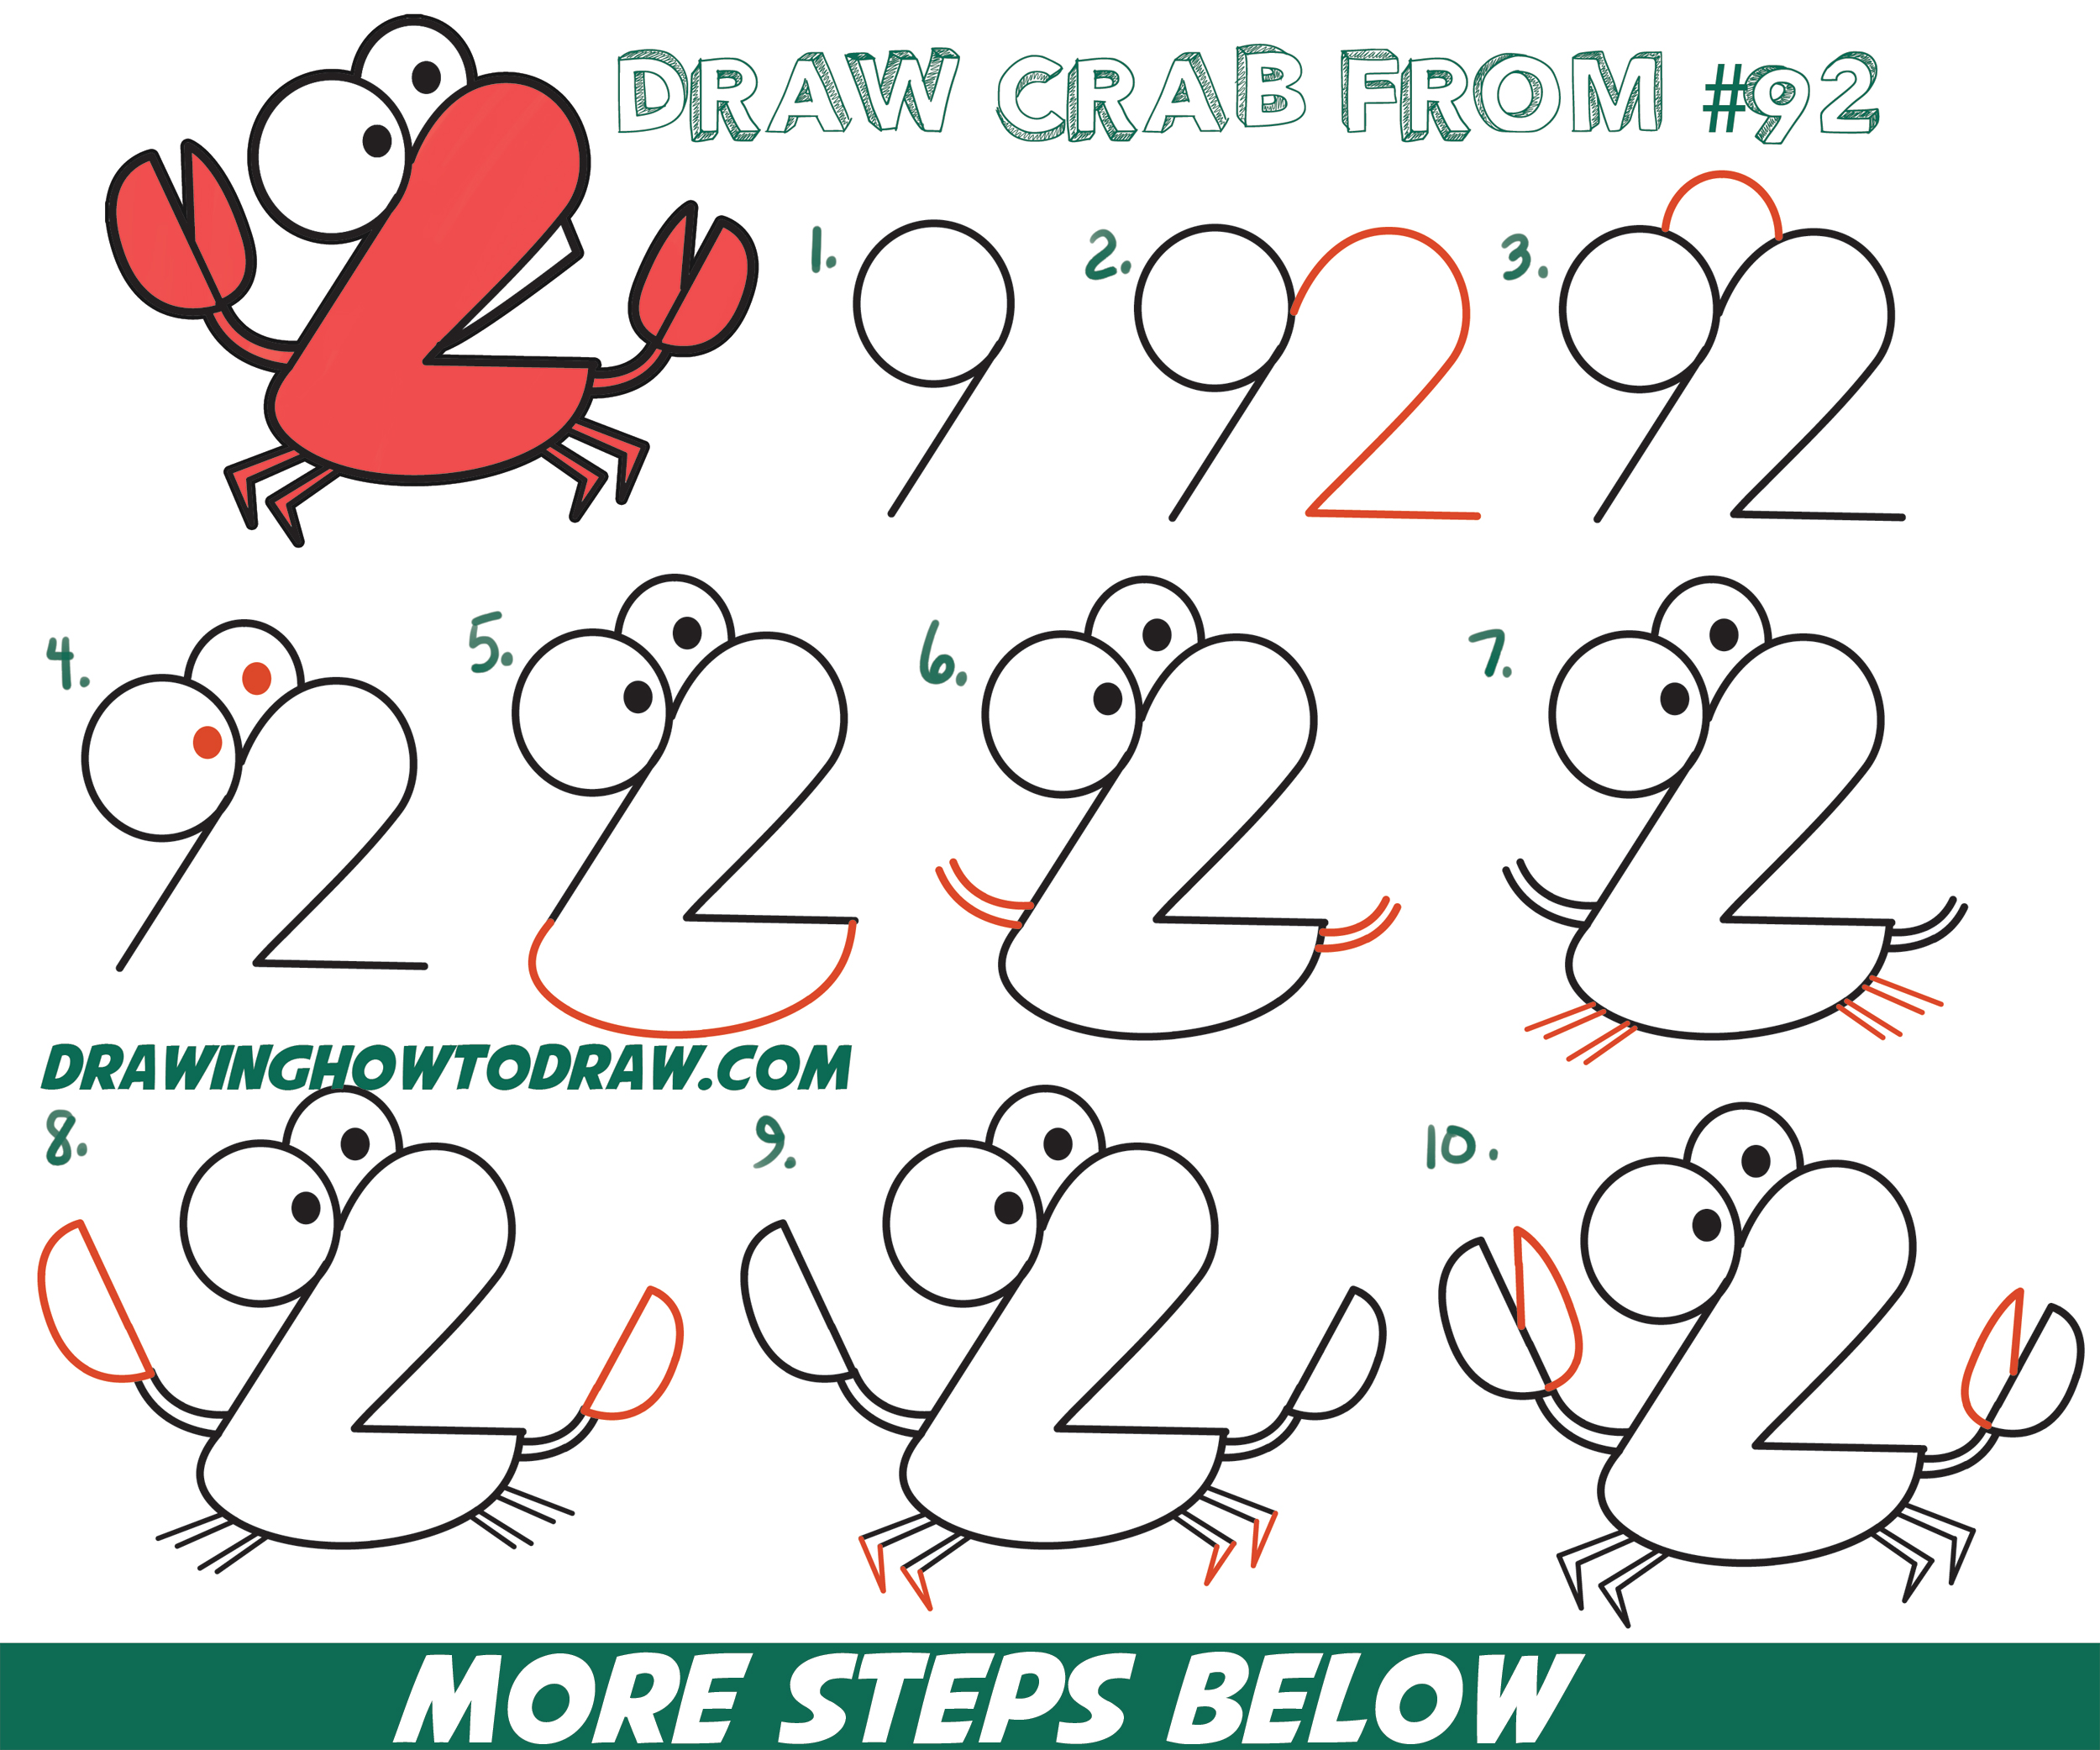 "How to Draw Cartoon Crab from Numbers ""92"" Easy Step by Step Drawing Tutorial for Kids"